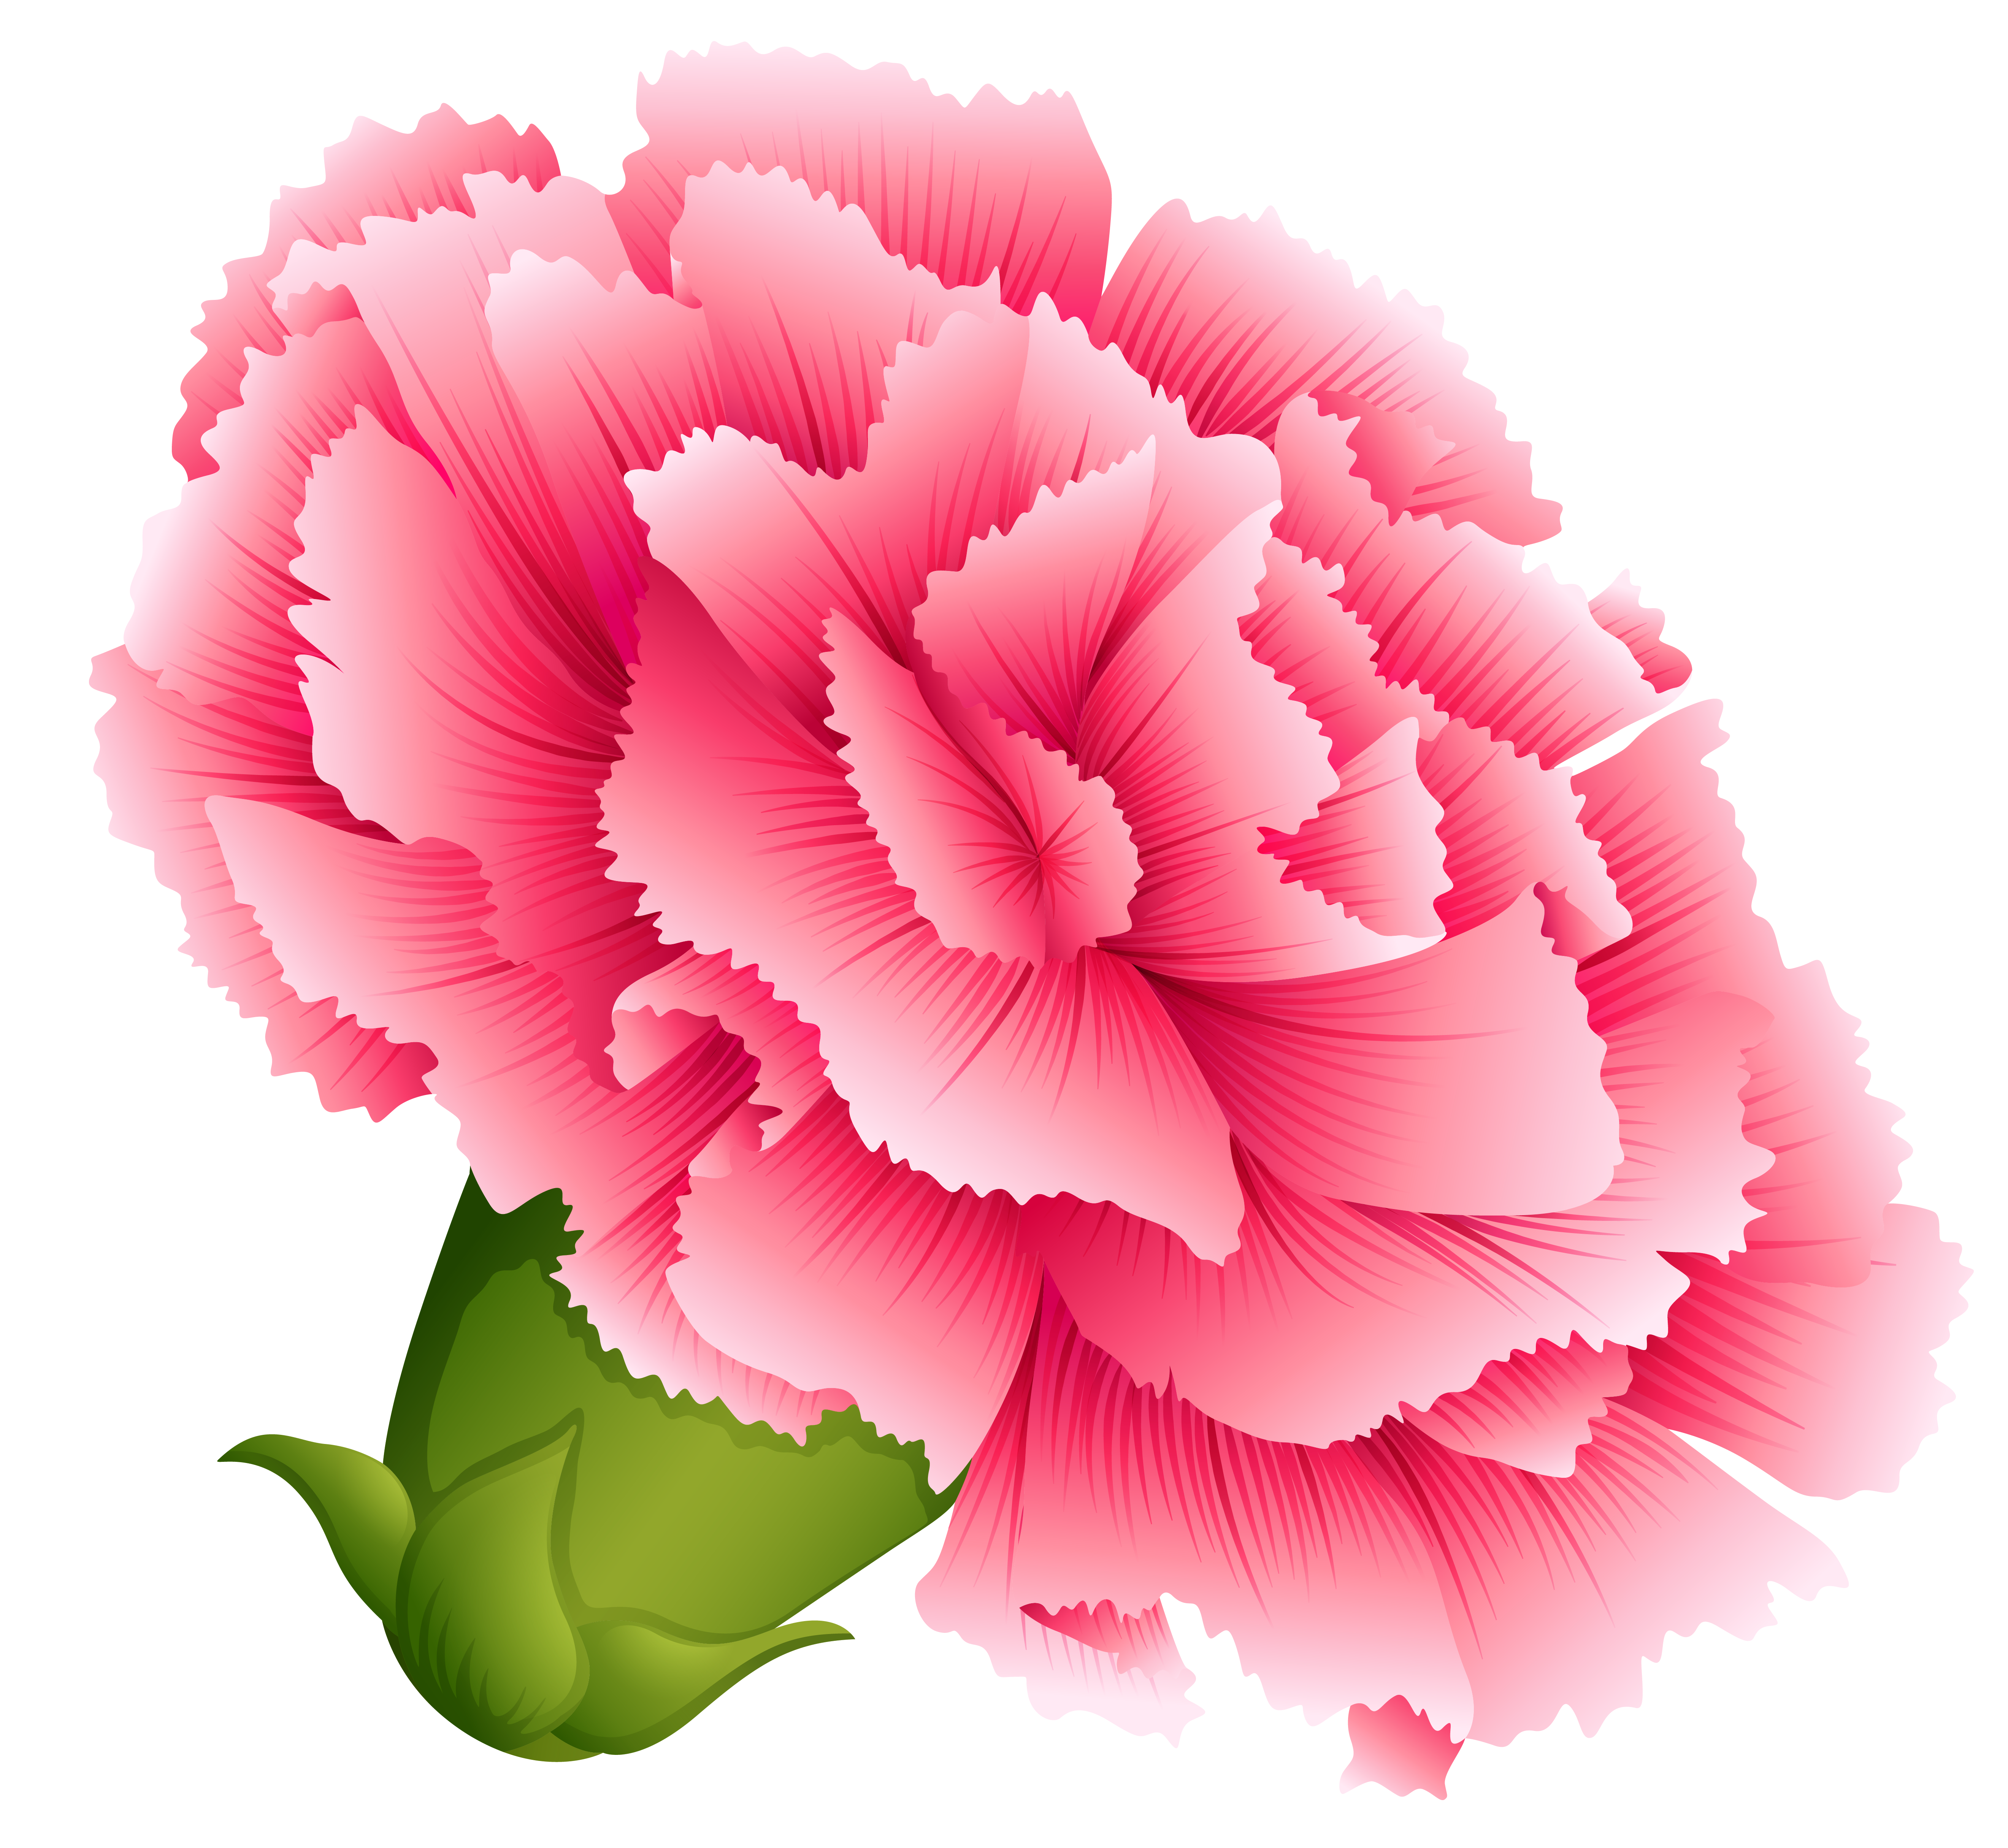 Carnation clipart #11